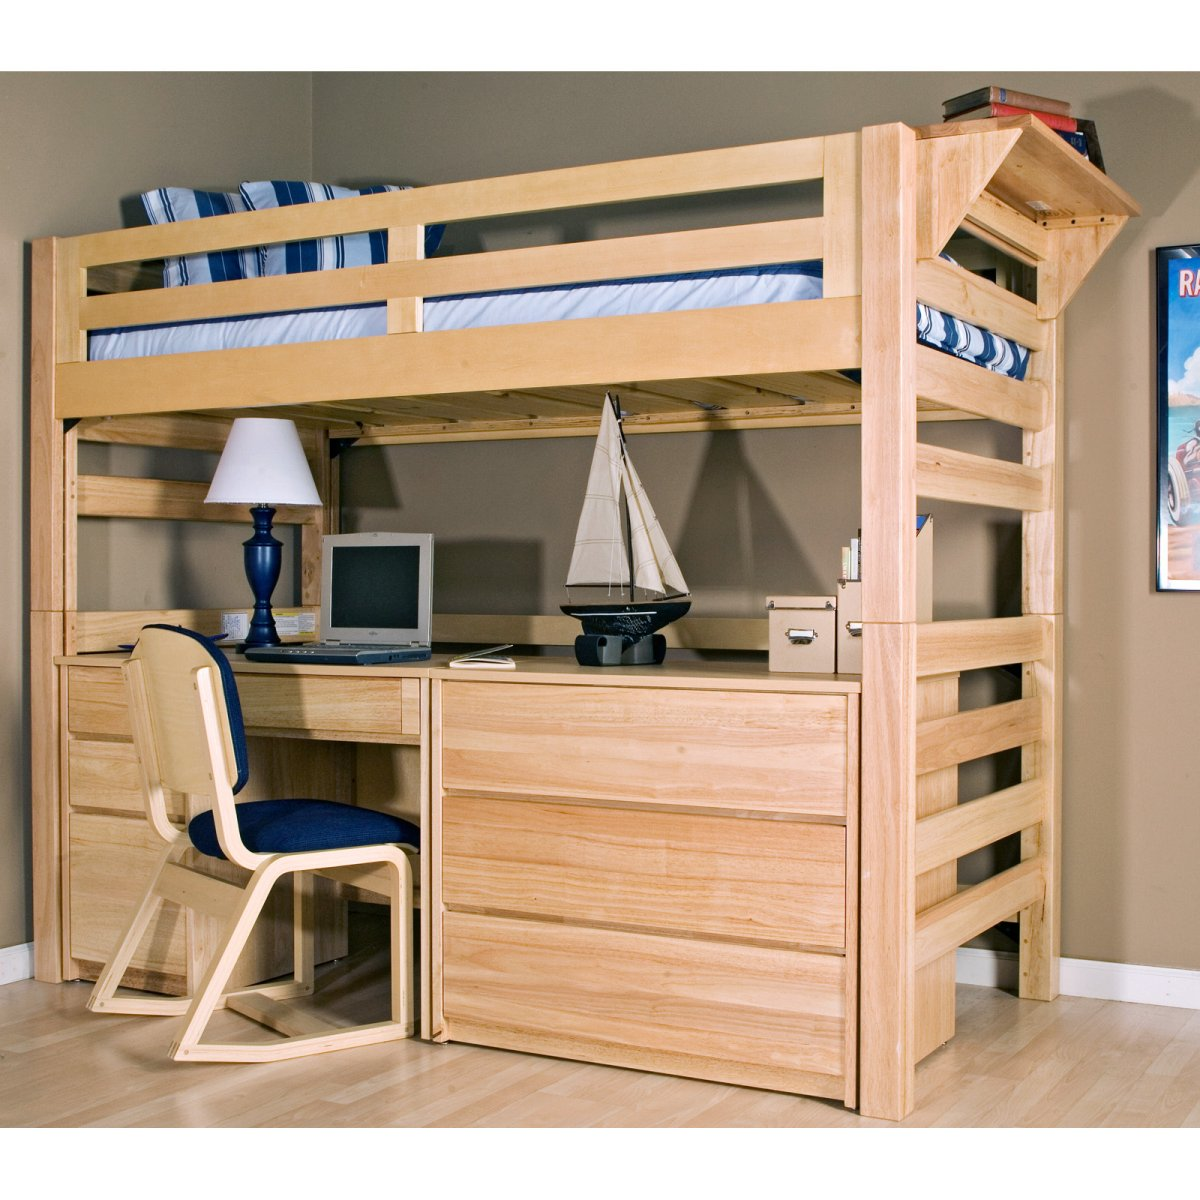 Stunning Full Loft Bed With Desk Designs